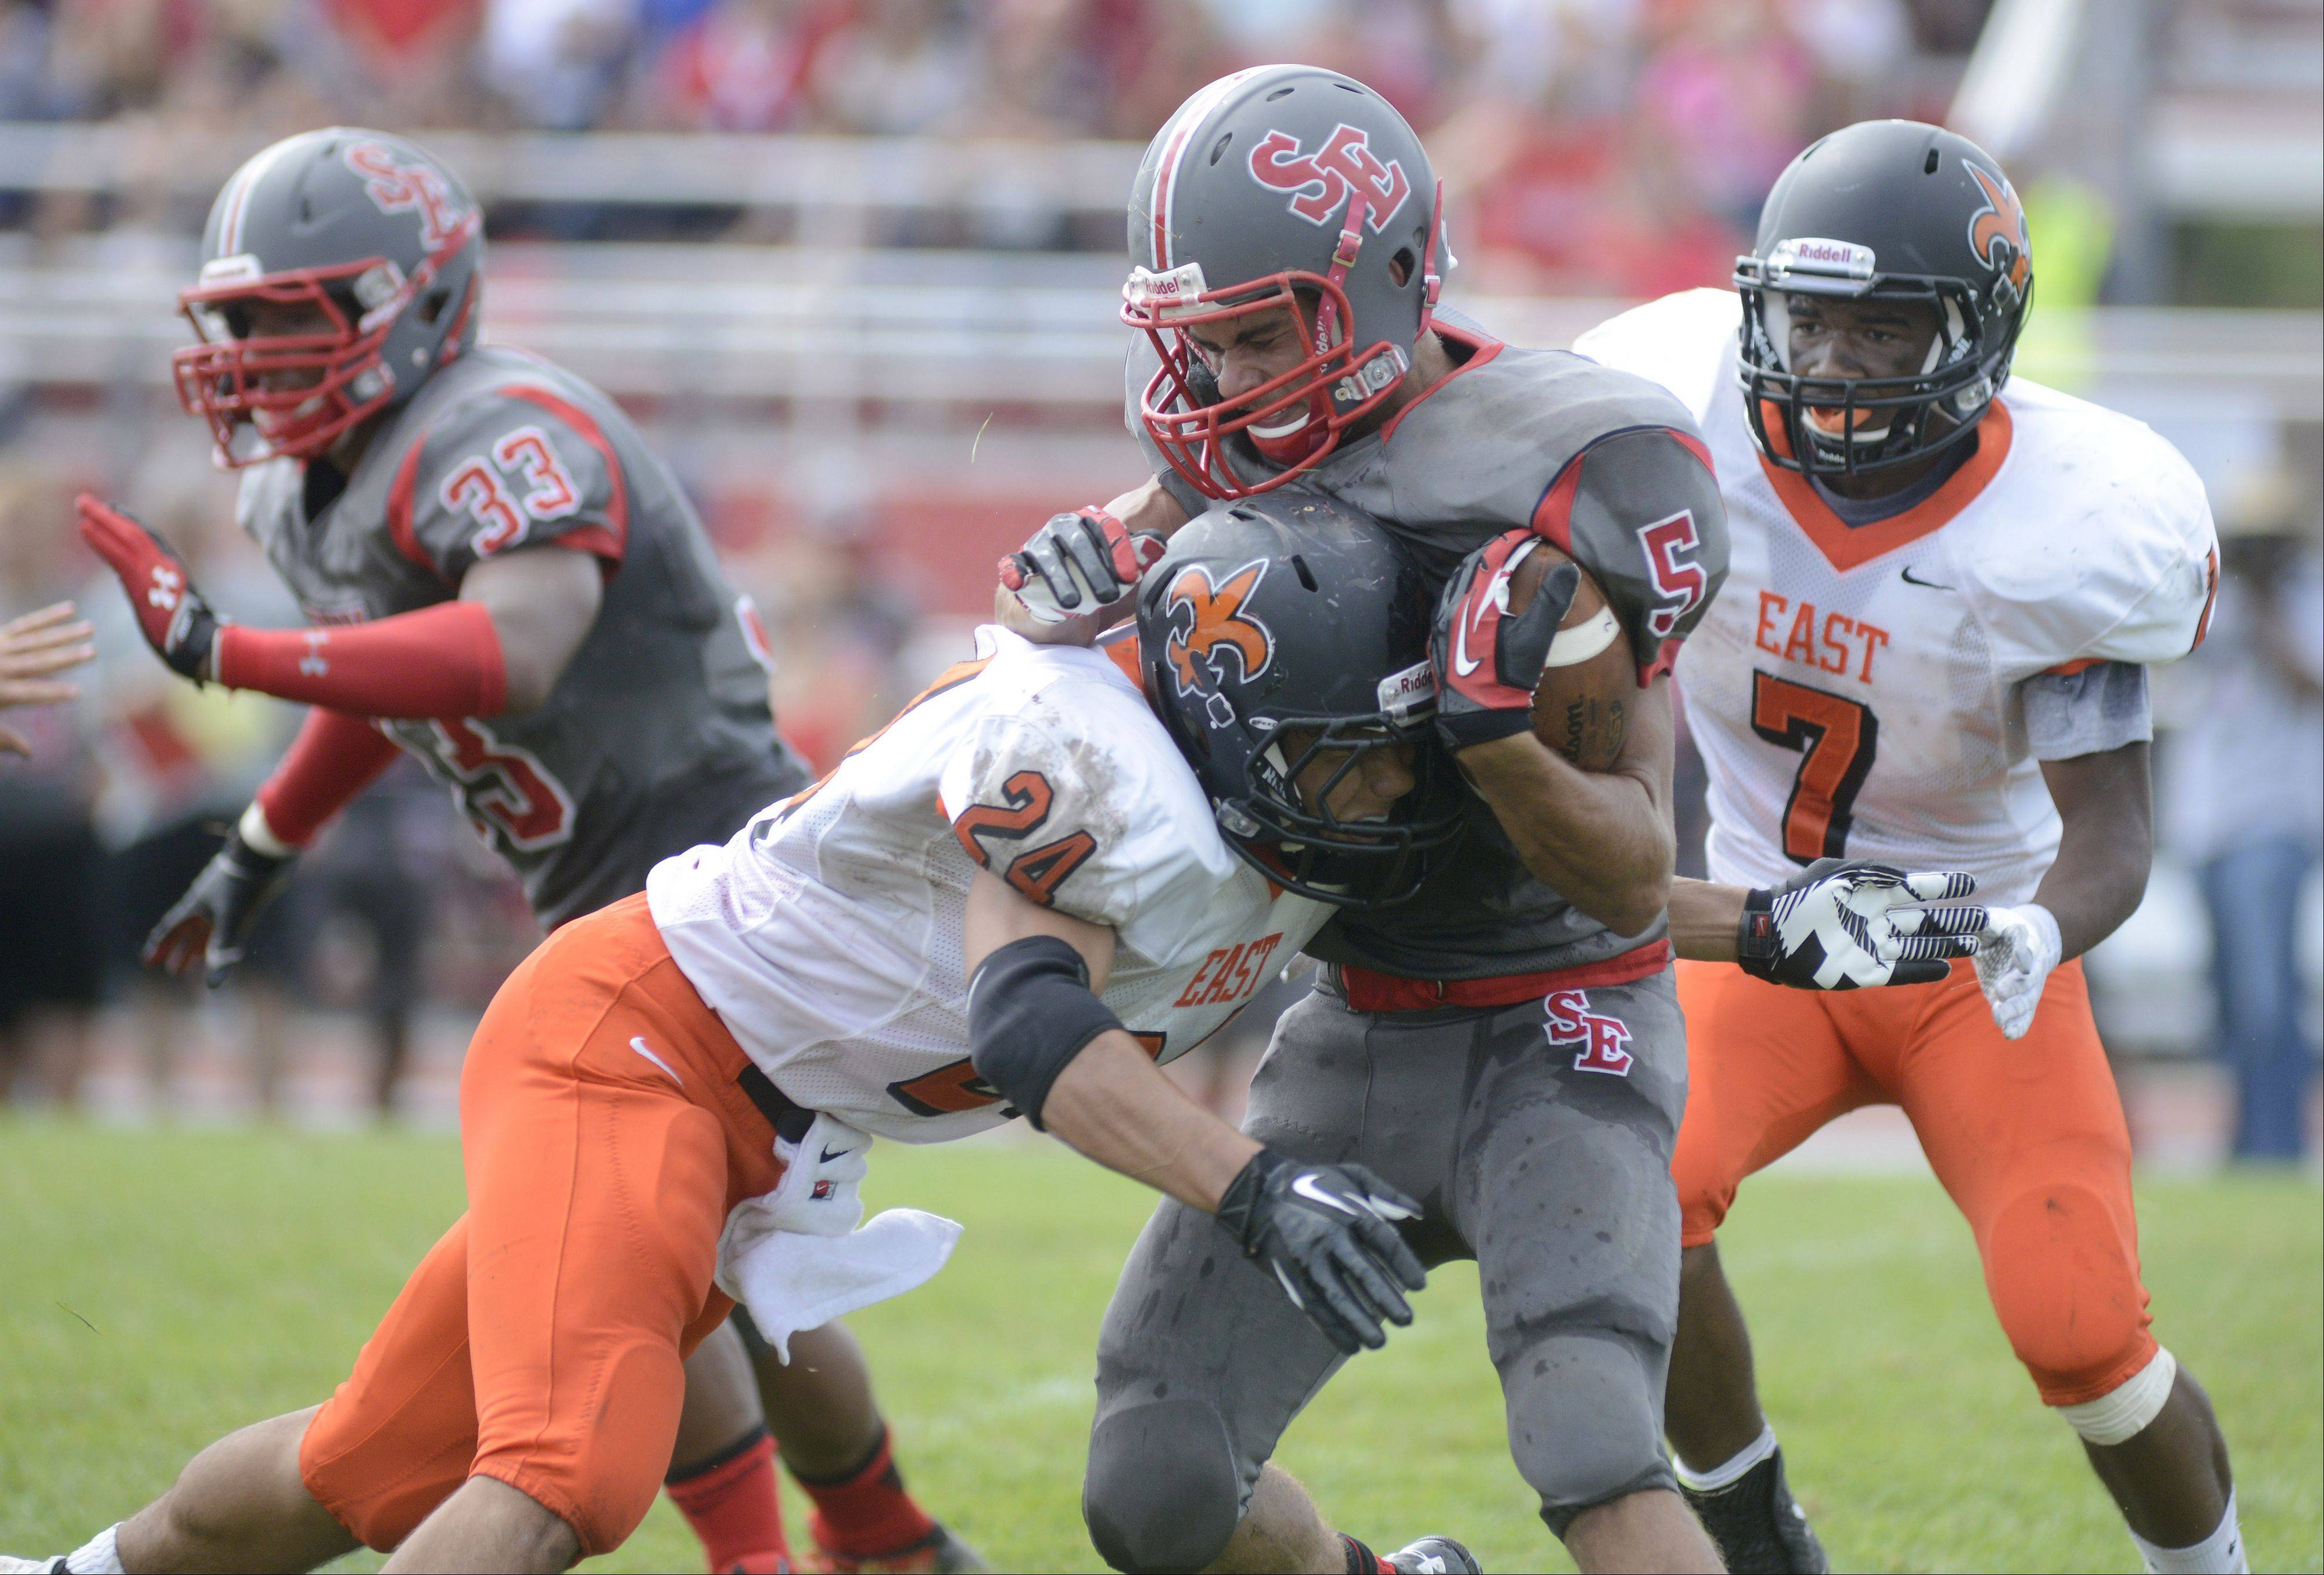 St. Charles East�s Ramon Lopez takes down South Elgin�s Tyler Christensen in the first quarter on Saturday, August 31.